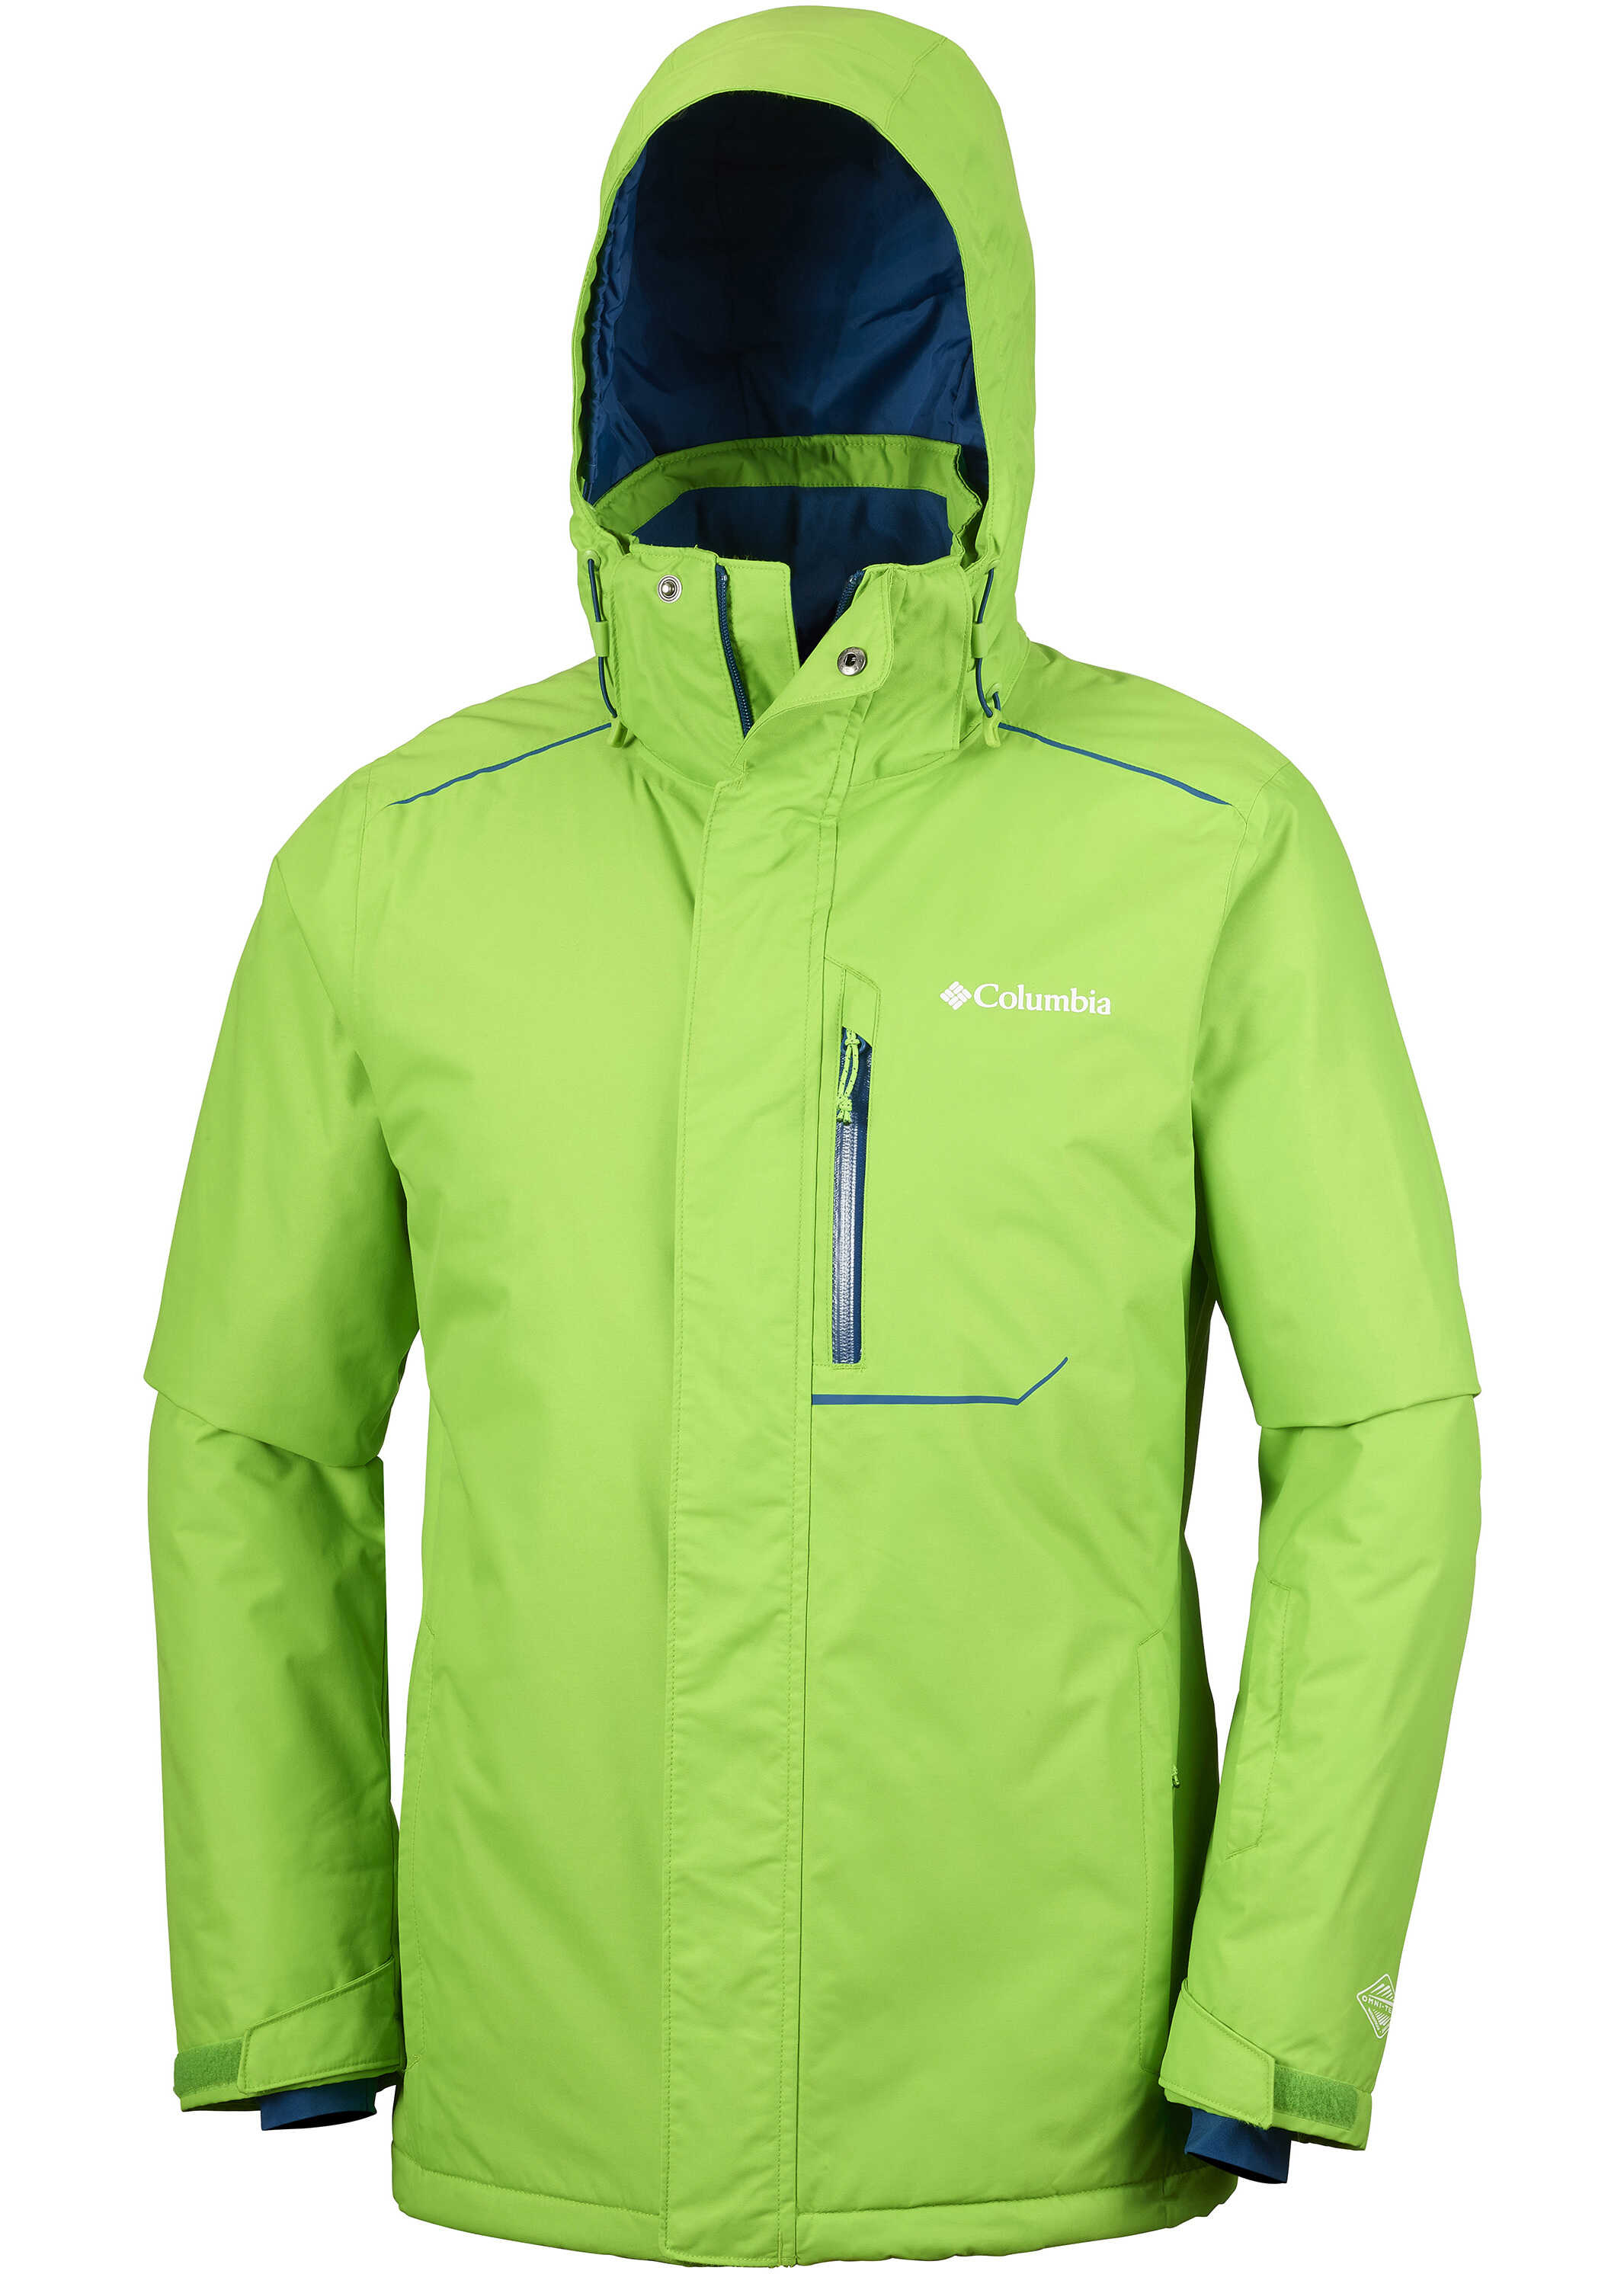 Columbia RIDE ON JACKET-CYBER GREEN/PHONIX BLUE CYBER GREEN/PHONIX BLUE